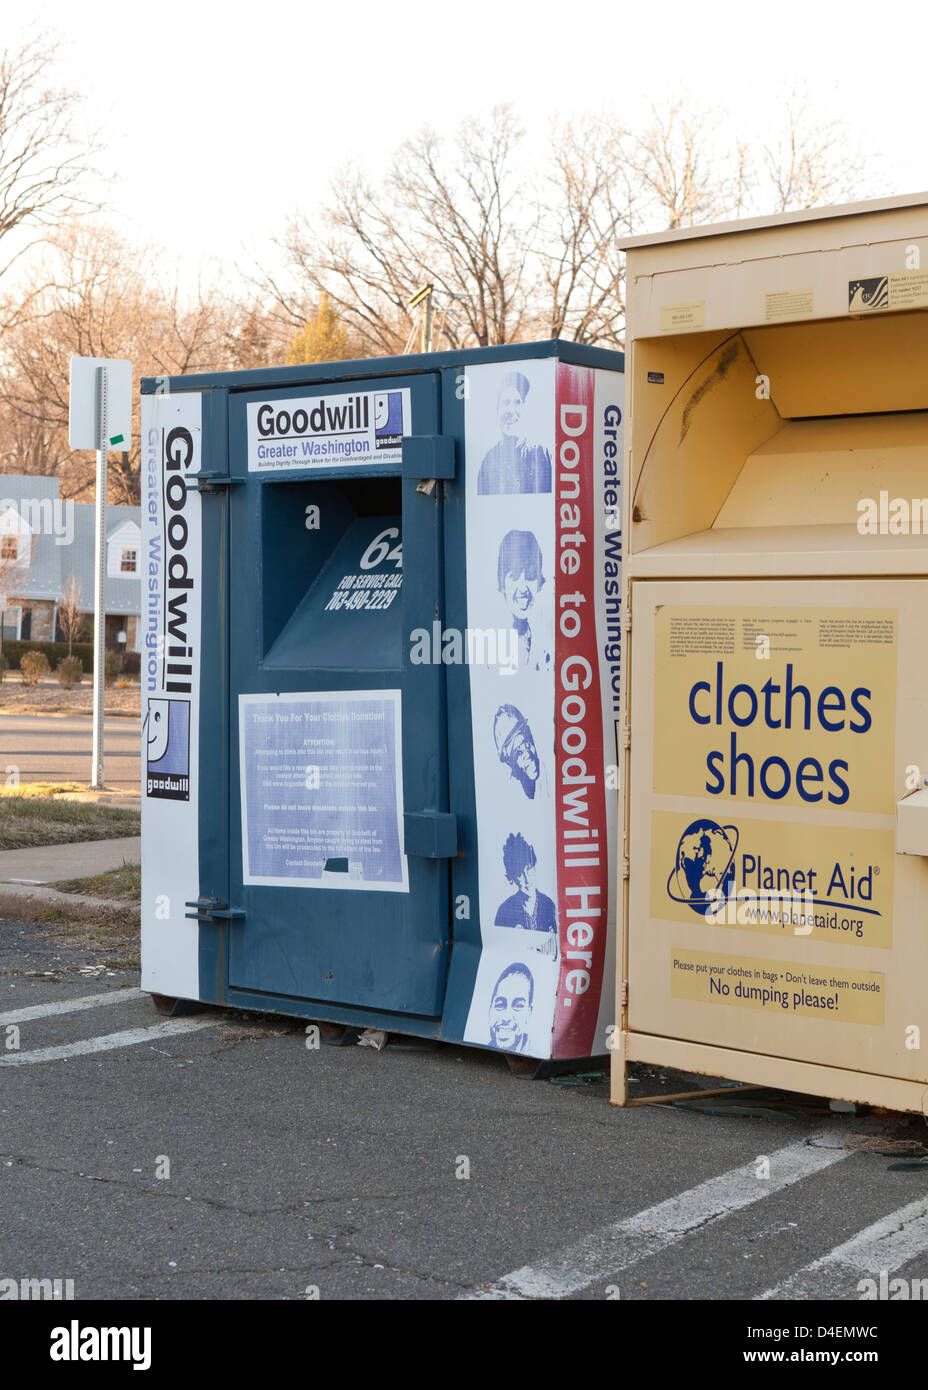 Used clothing donation bins - Virginia USA - Stock Image